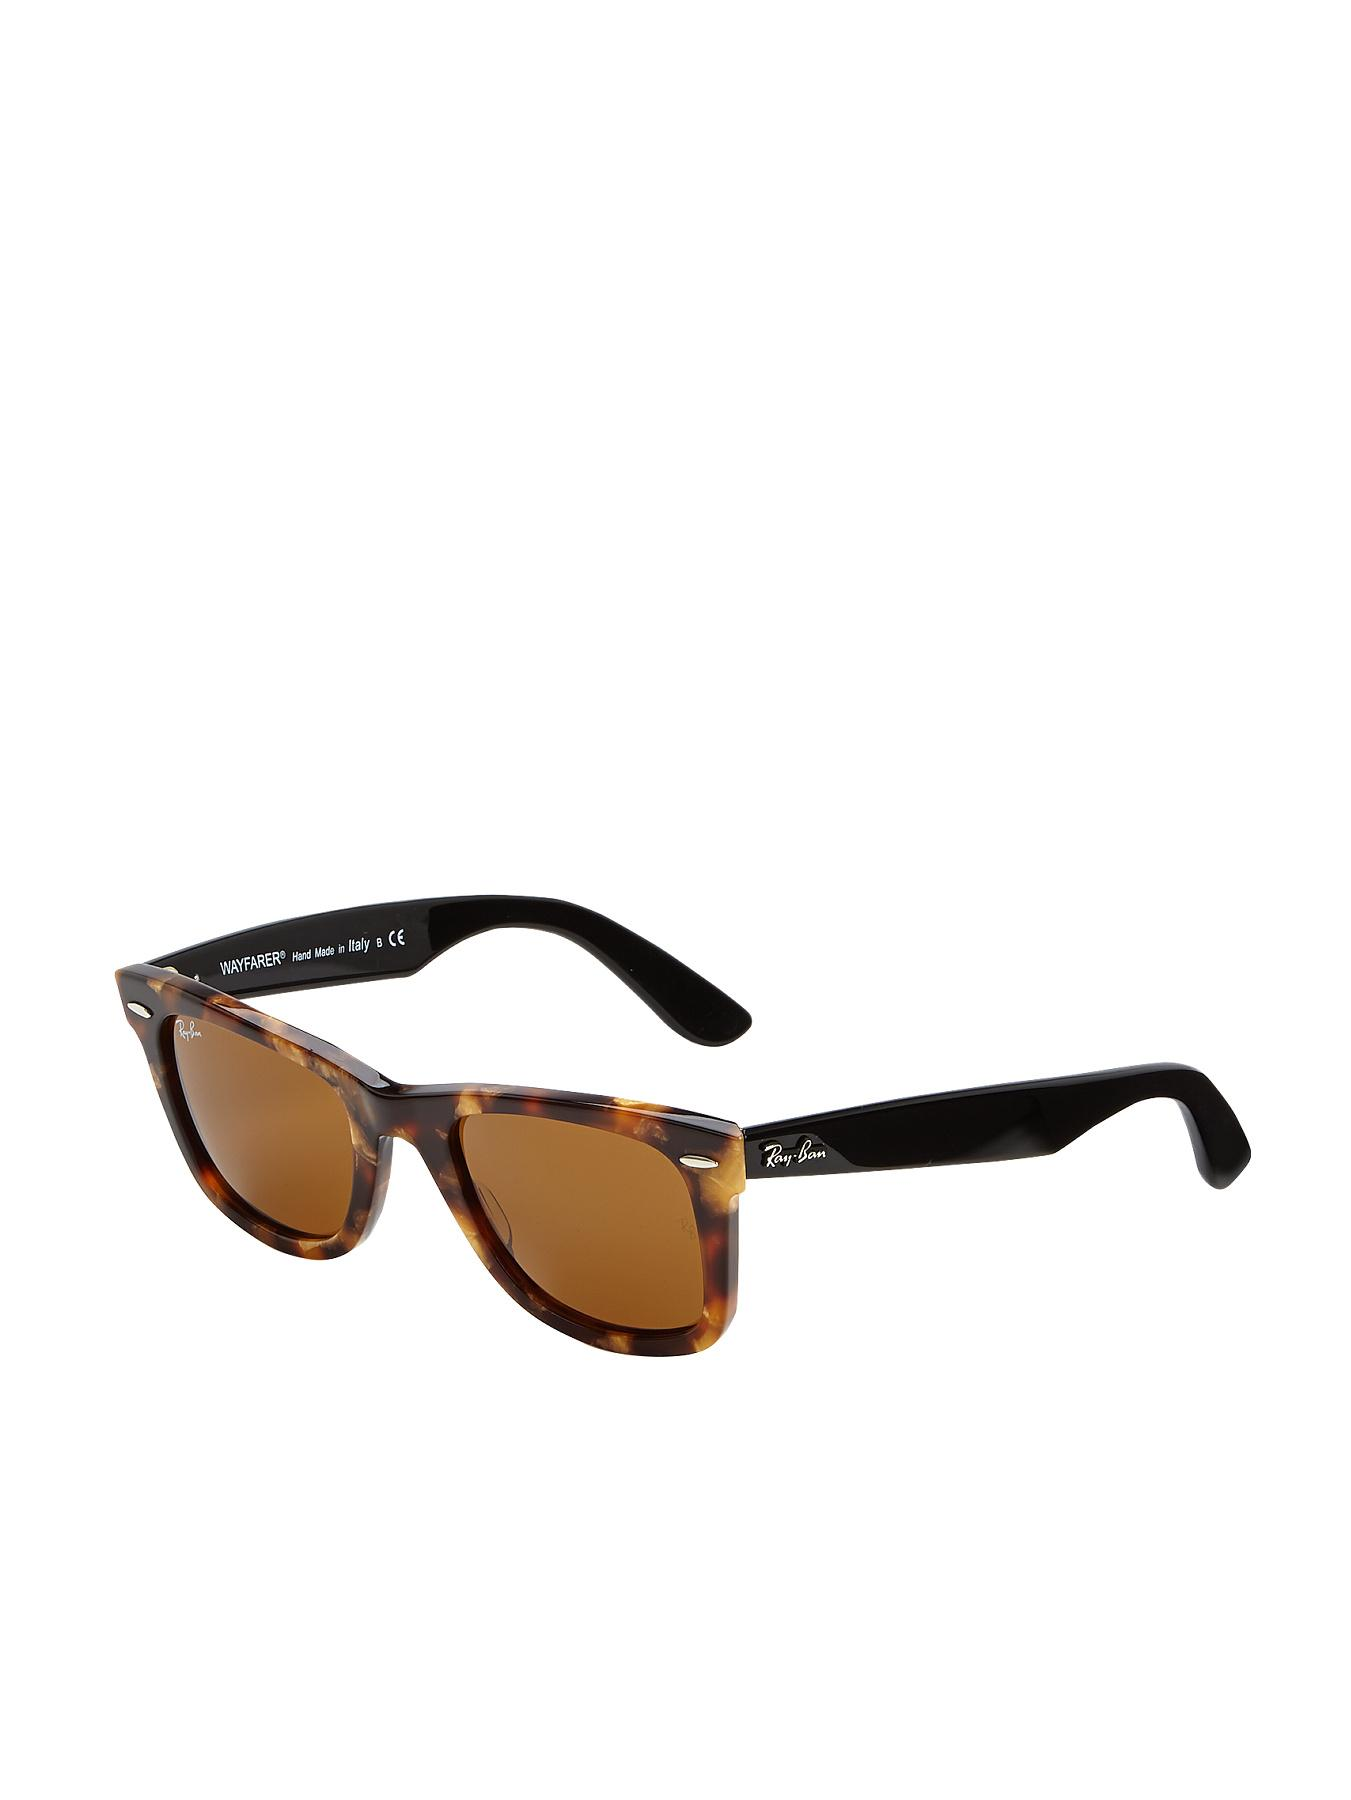 Ray-Ban Wayfarer Sunglasses - Brown, Brown